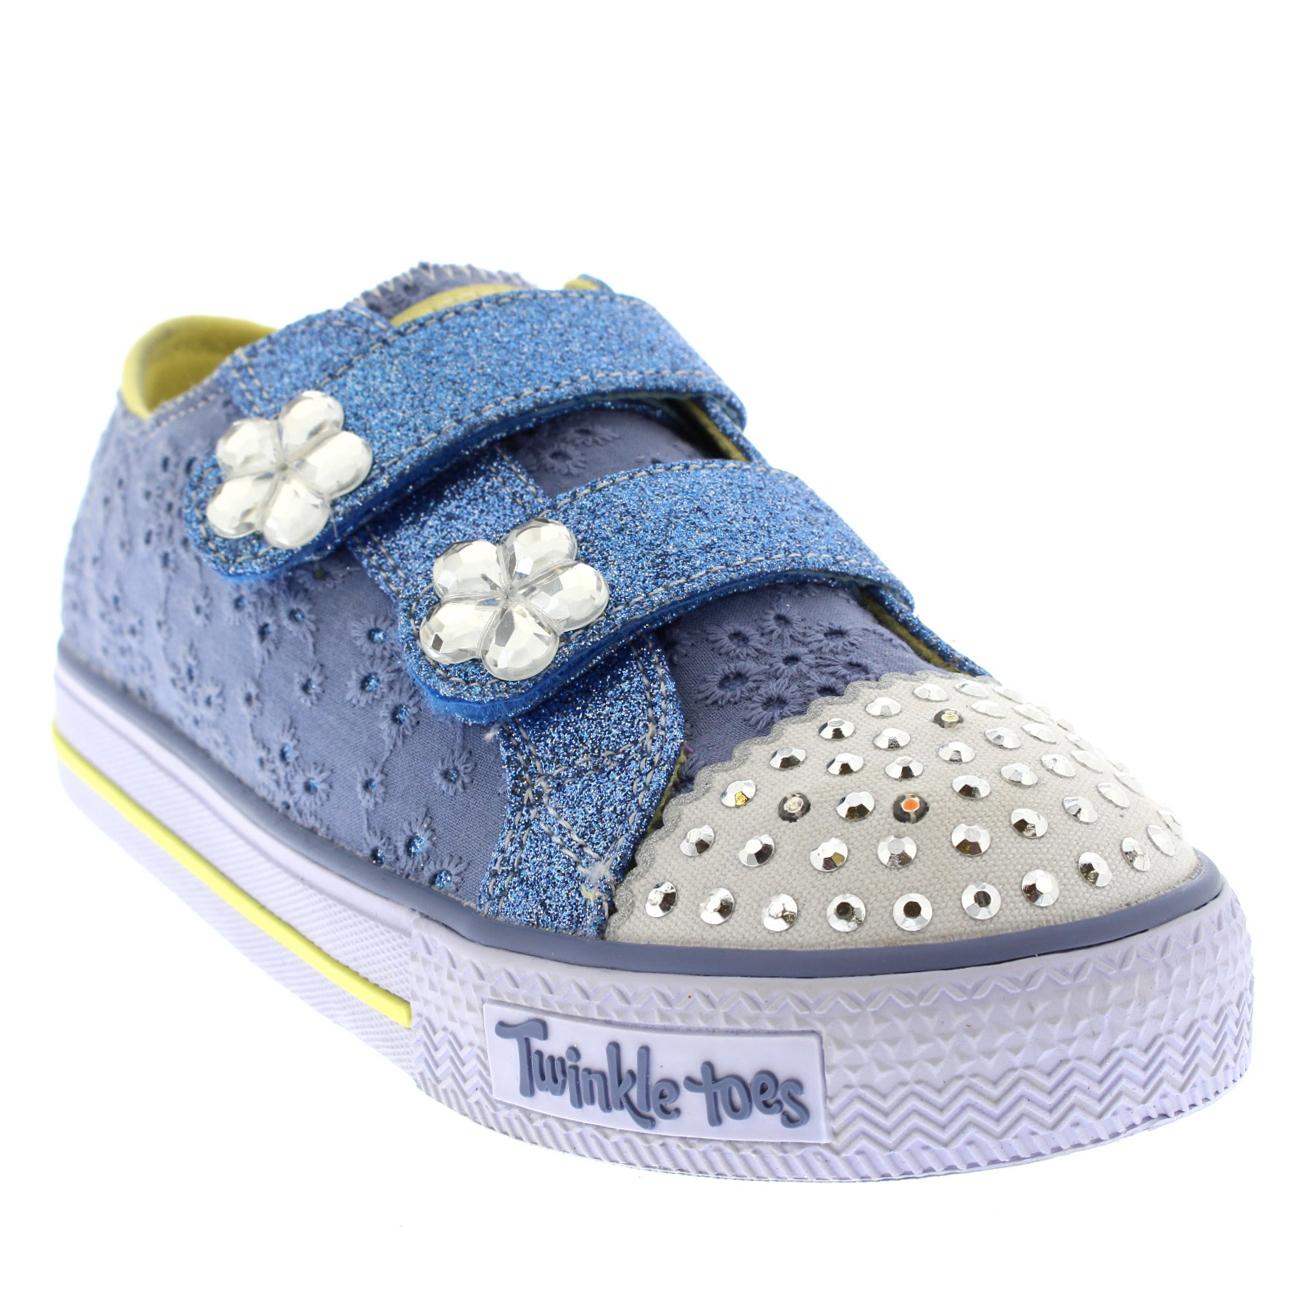 e68112c98 twinkle toes infant cheap   OFF51% The Largest Catalog Discounts